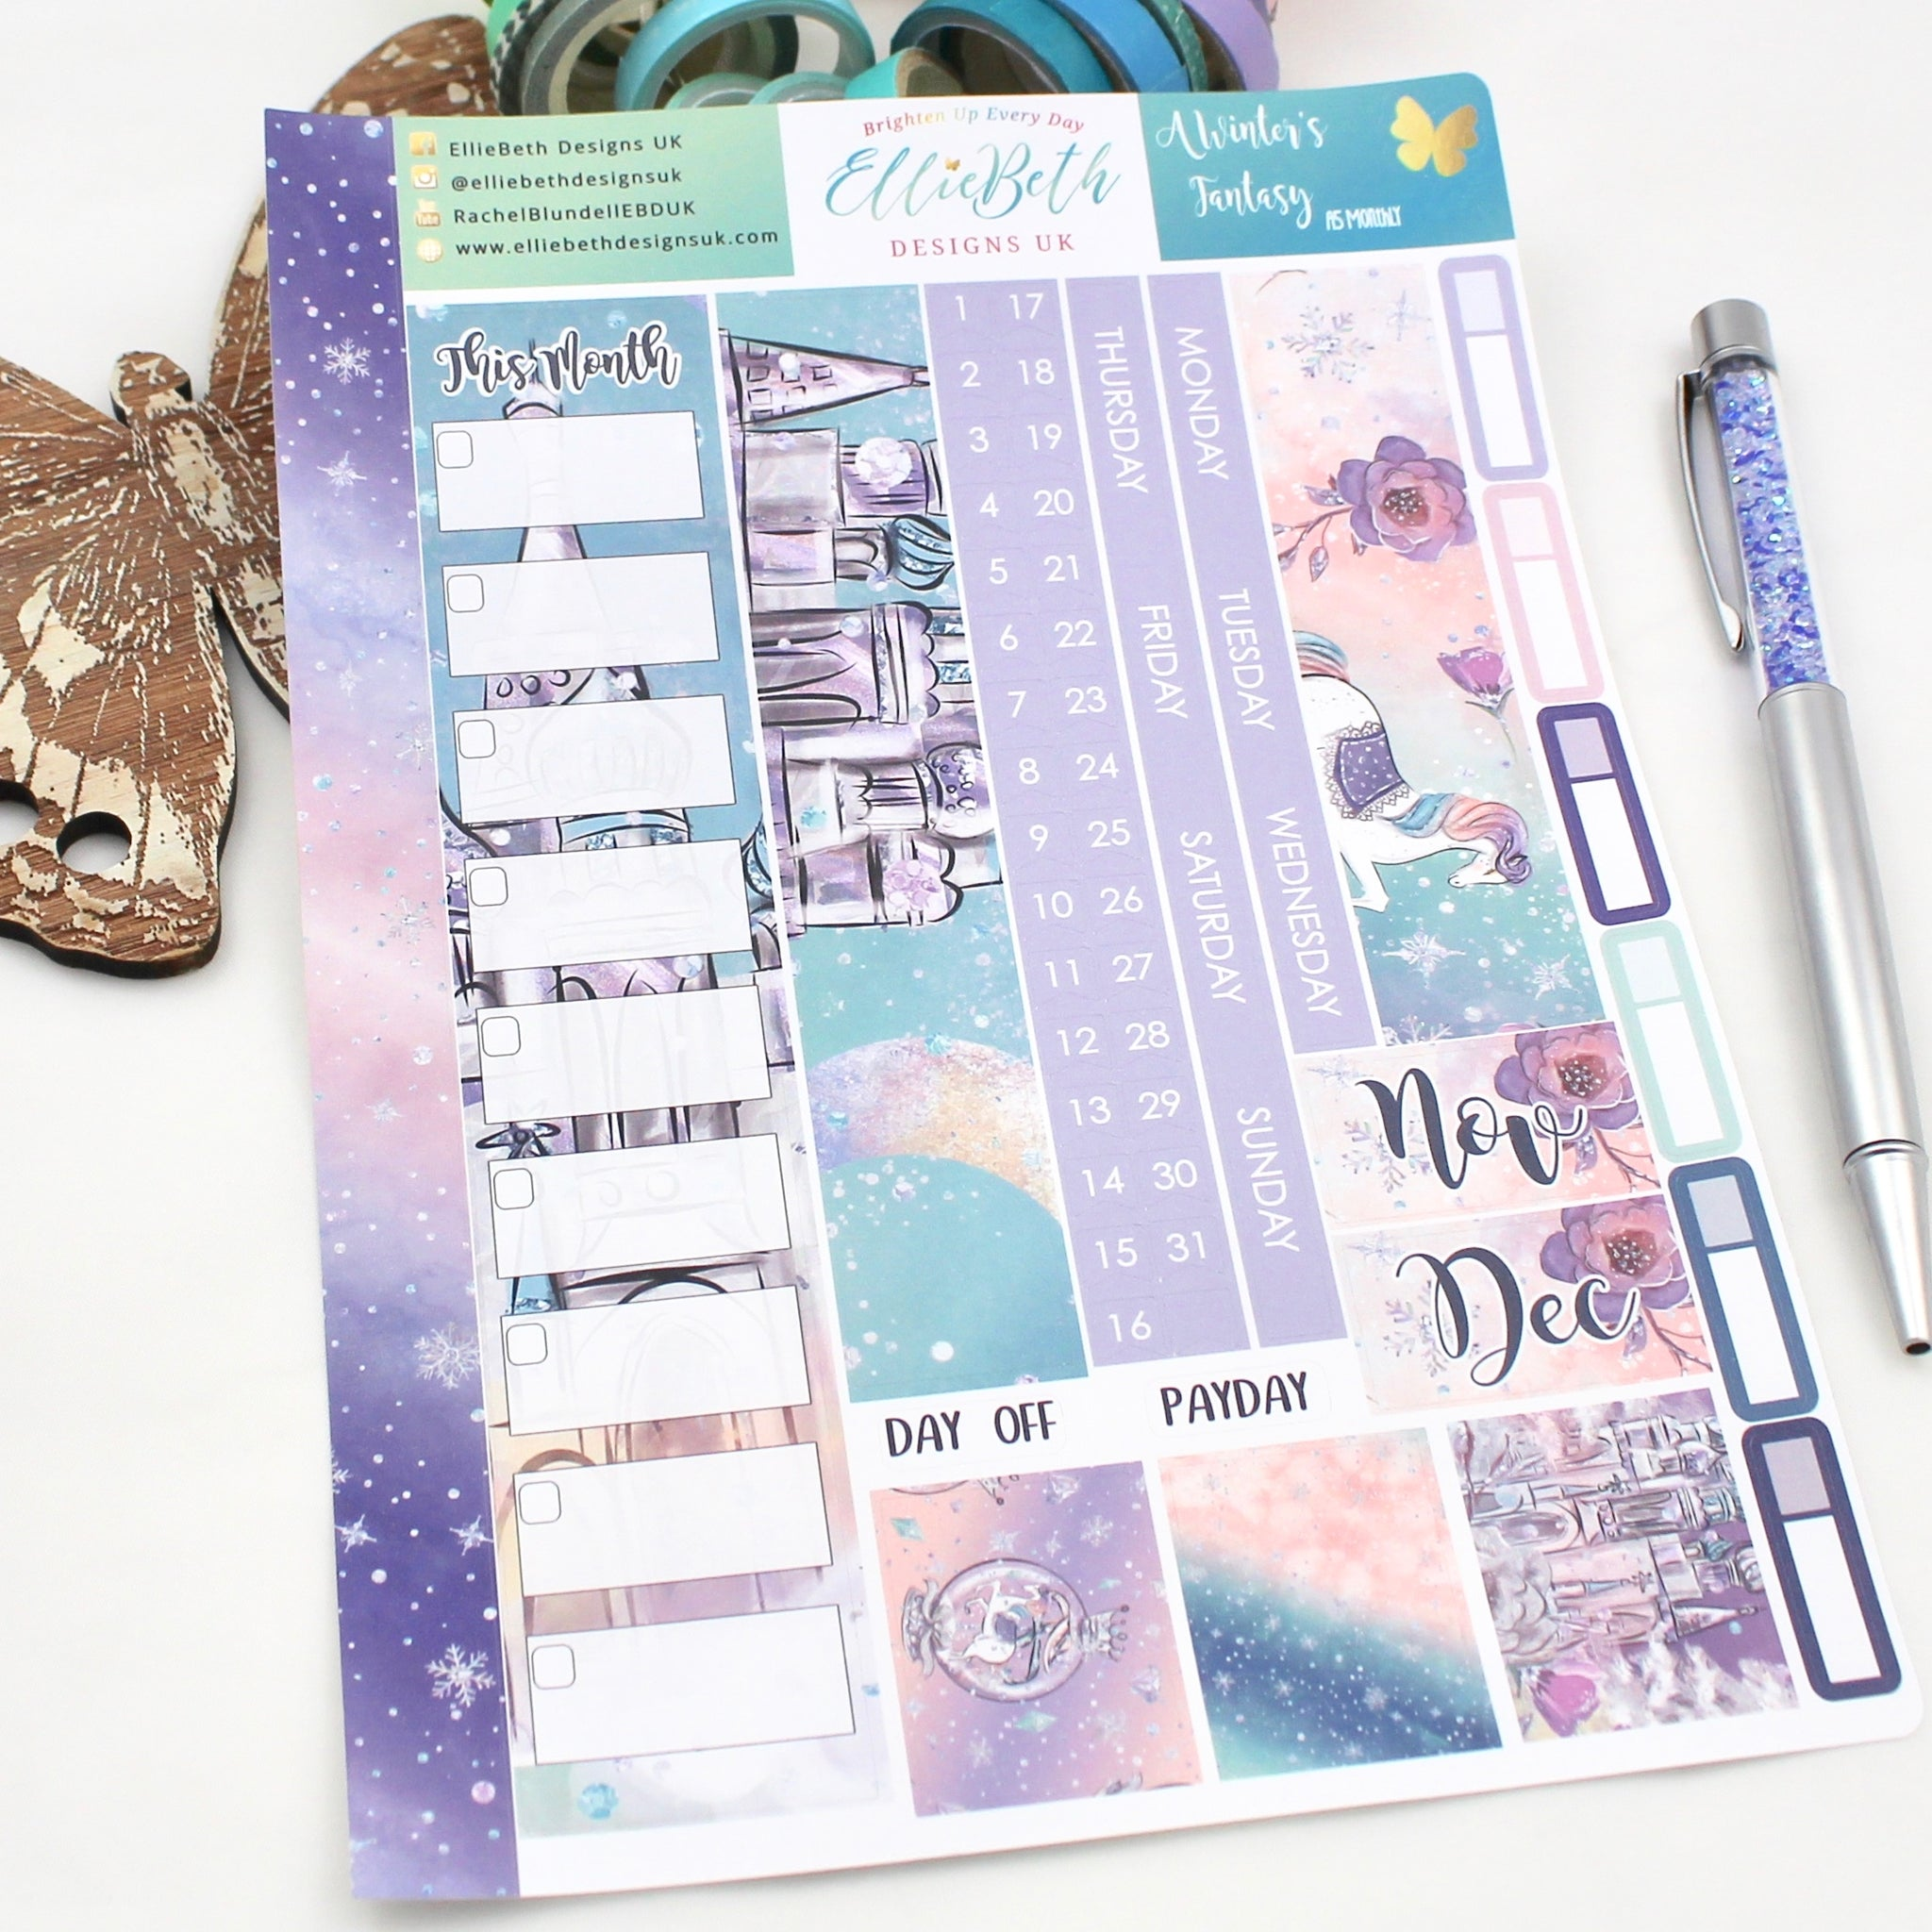 A Winter's Fantasy - A5 Monthly View Kit - A5 binder ready planner stickers - EllieBeth Designs UK